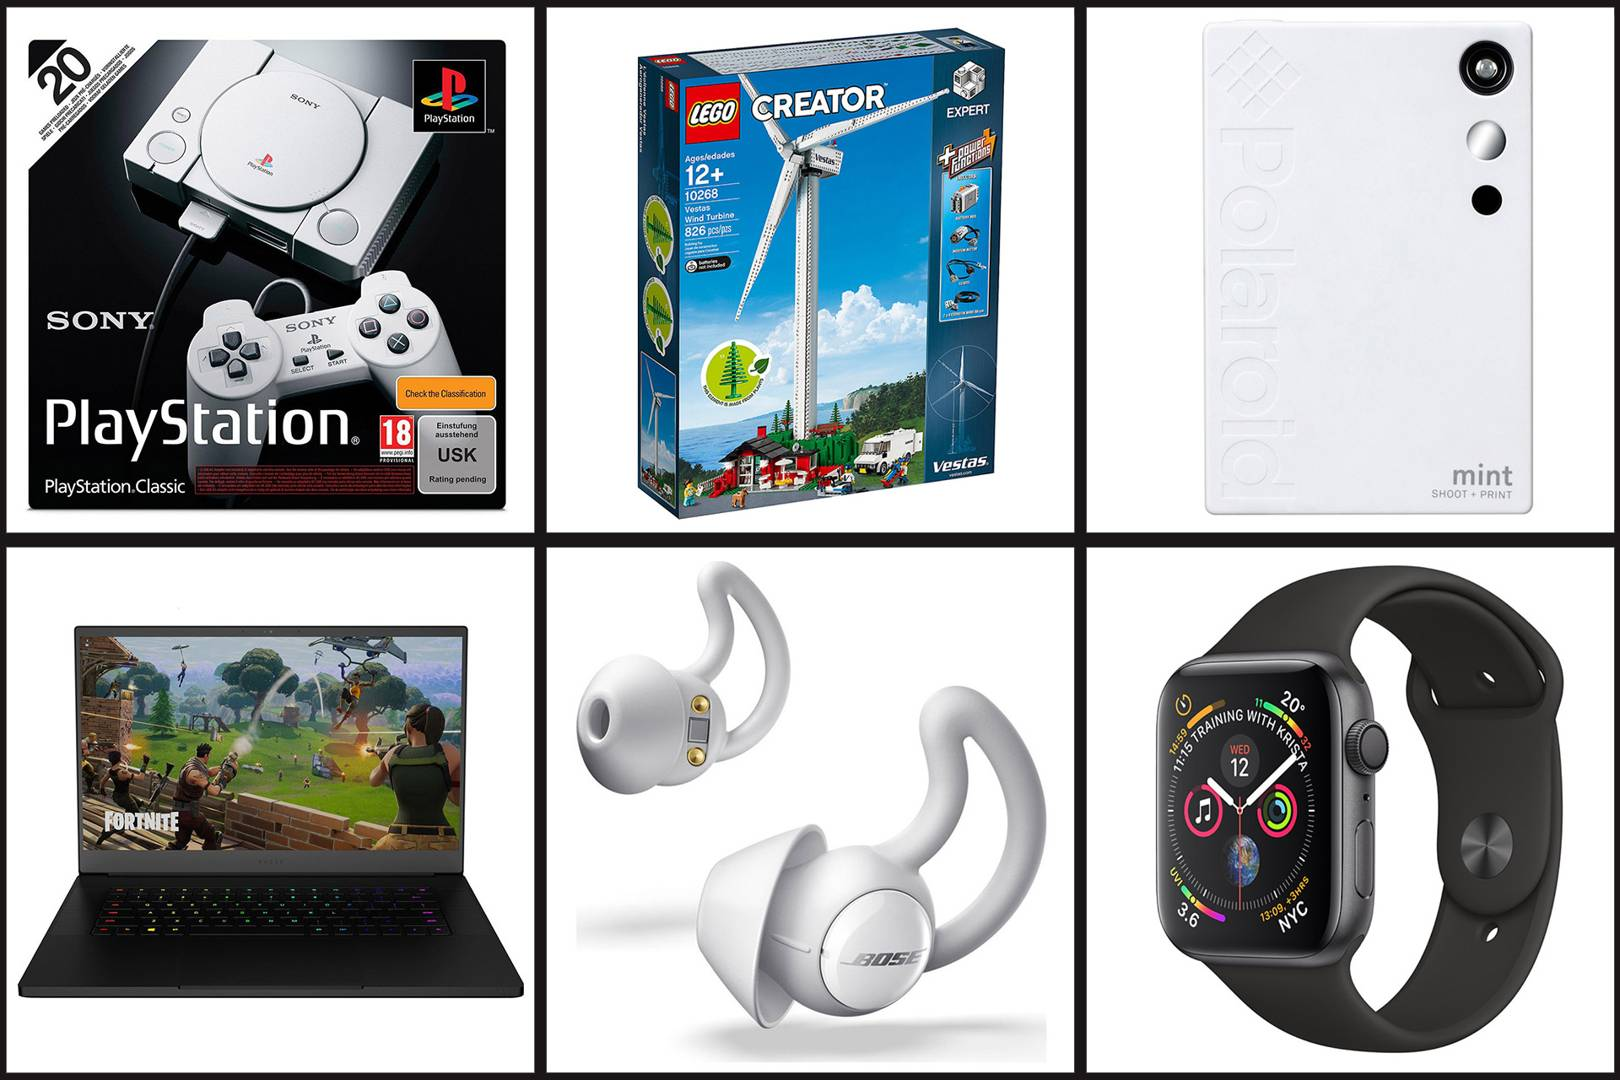 pics 25 Awesome New Tech Gift Ideas for the Gadget Lover on Your List